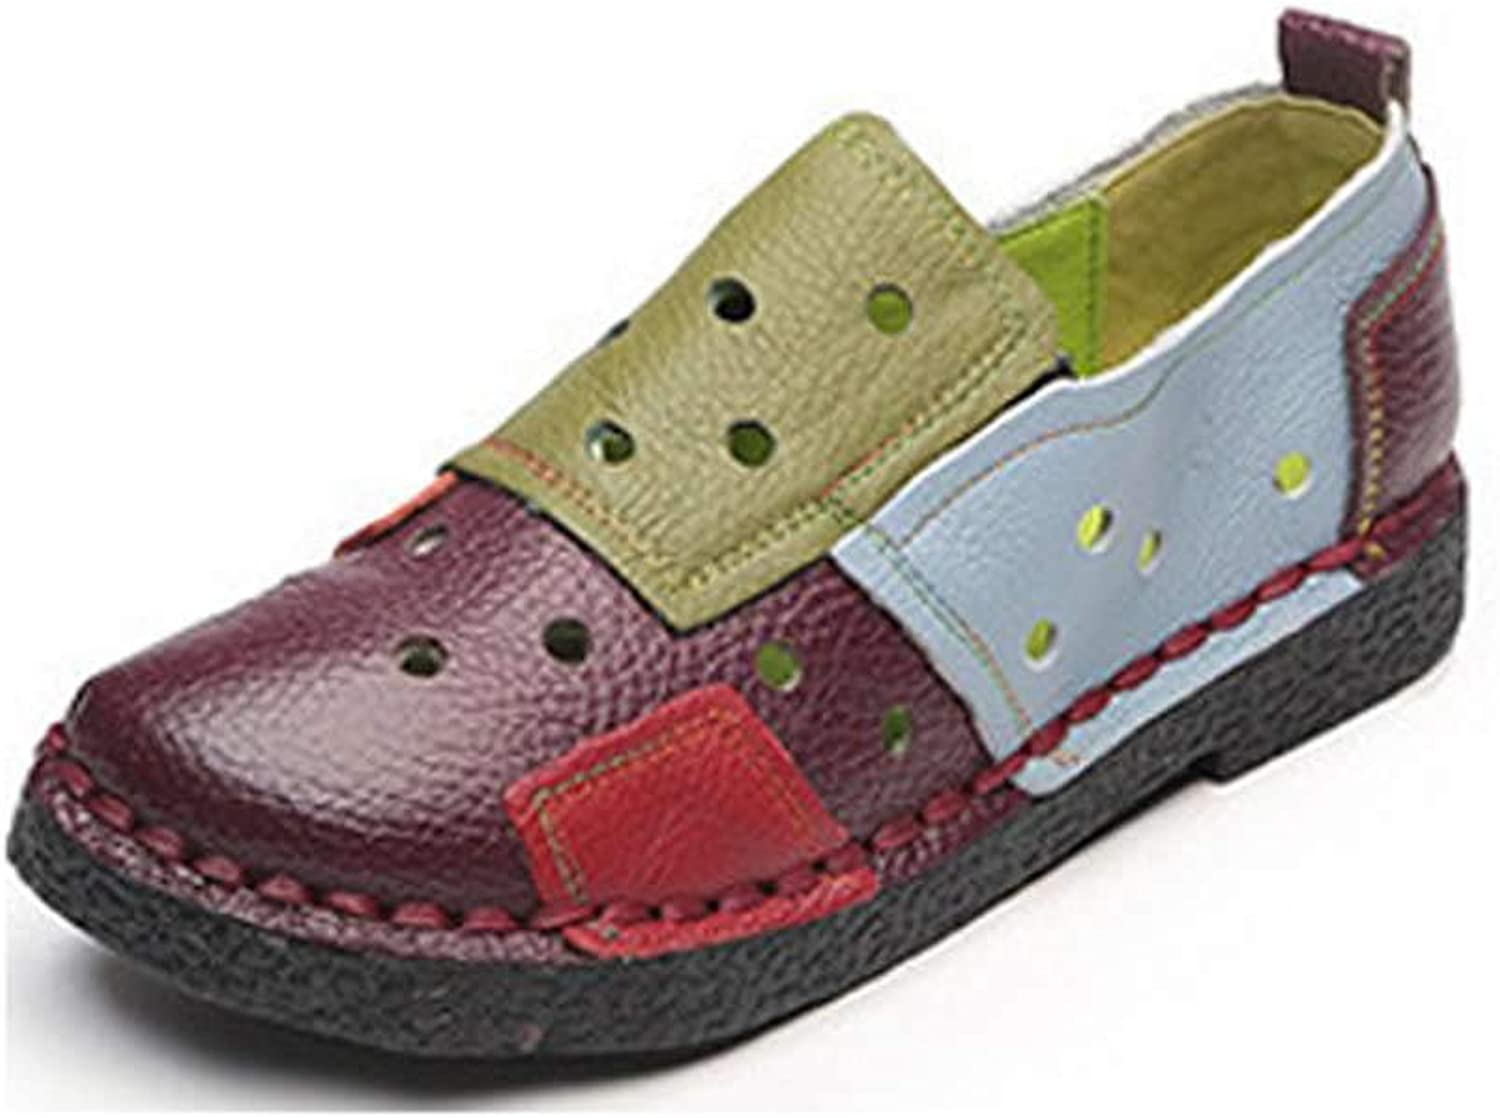 Luobote Women Loafers Leather Flats Fashion Slip On Casual Walking shoes colorful